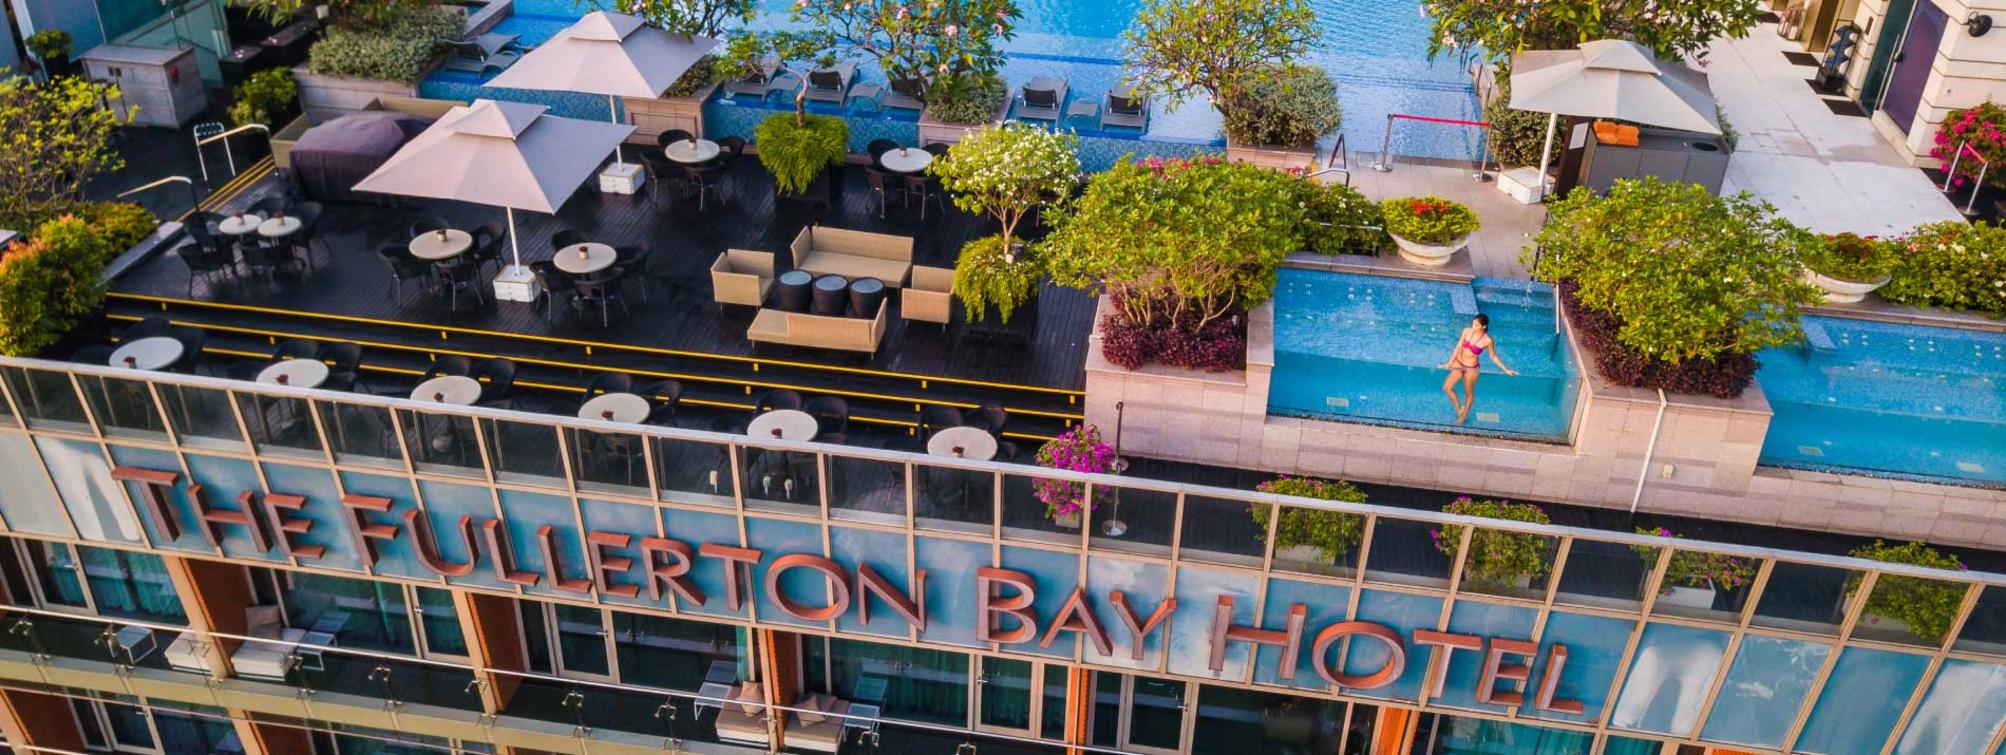 Exterior view of the hotel from the sky with the rooftop pool